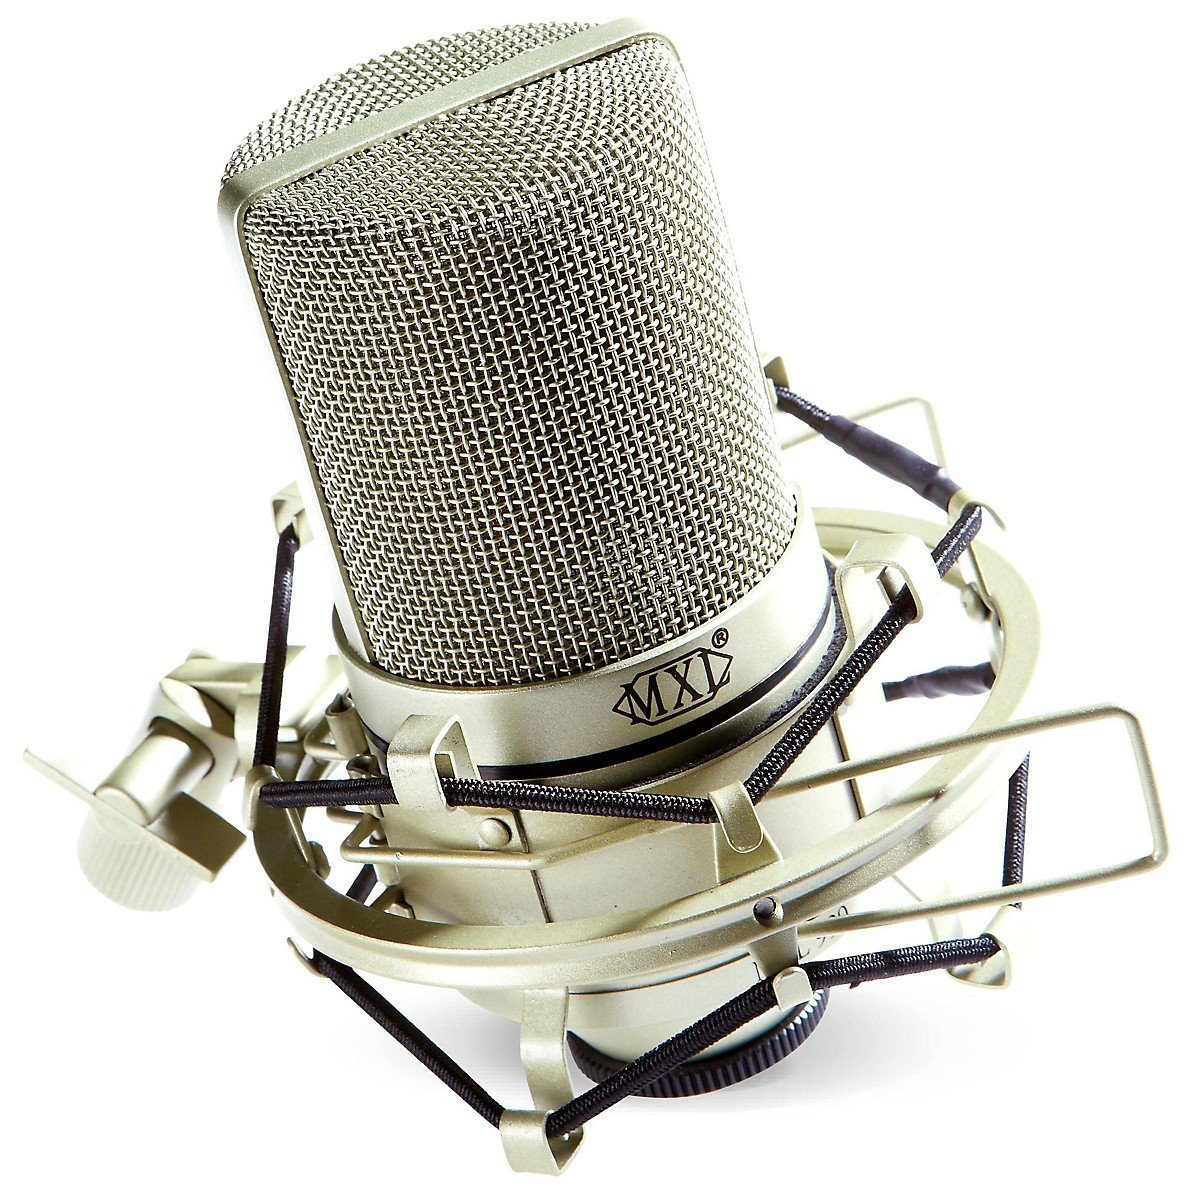 Best Budget Microphones - Get a Top 20 Podcast Microphone for Under $200 - MXL 990 Condenser Microphone